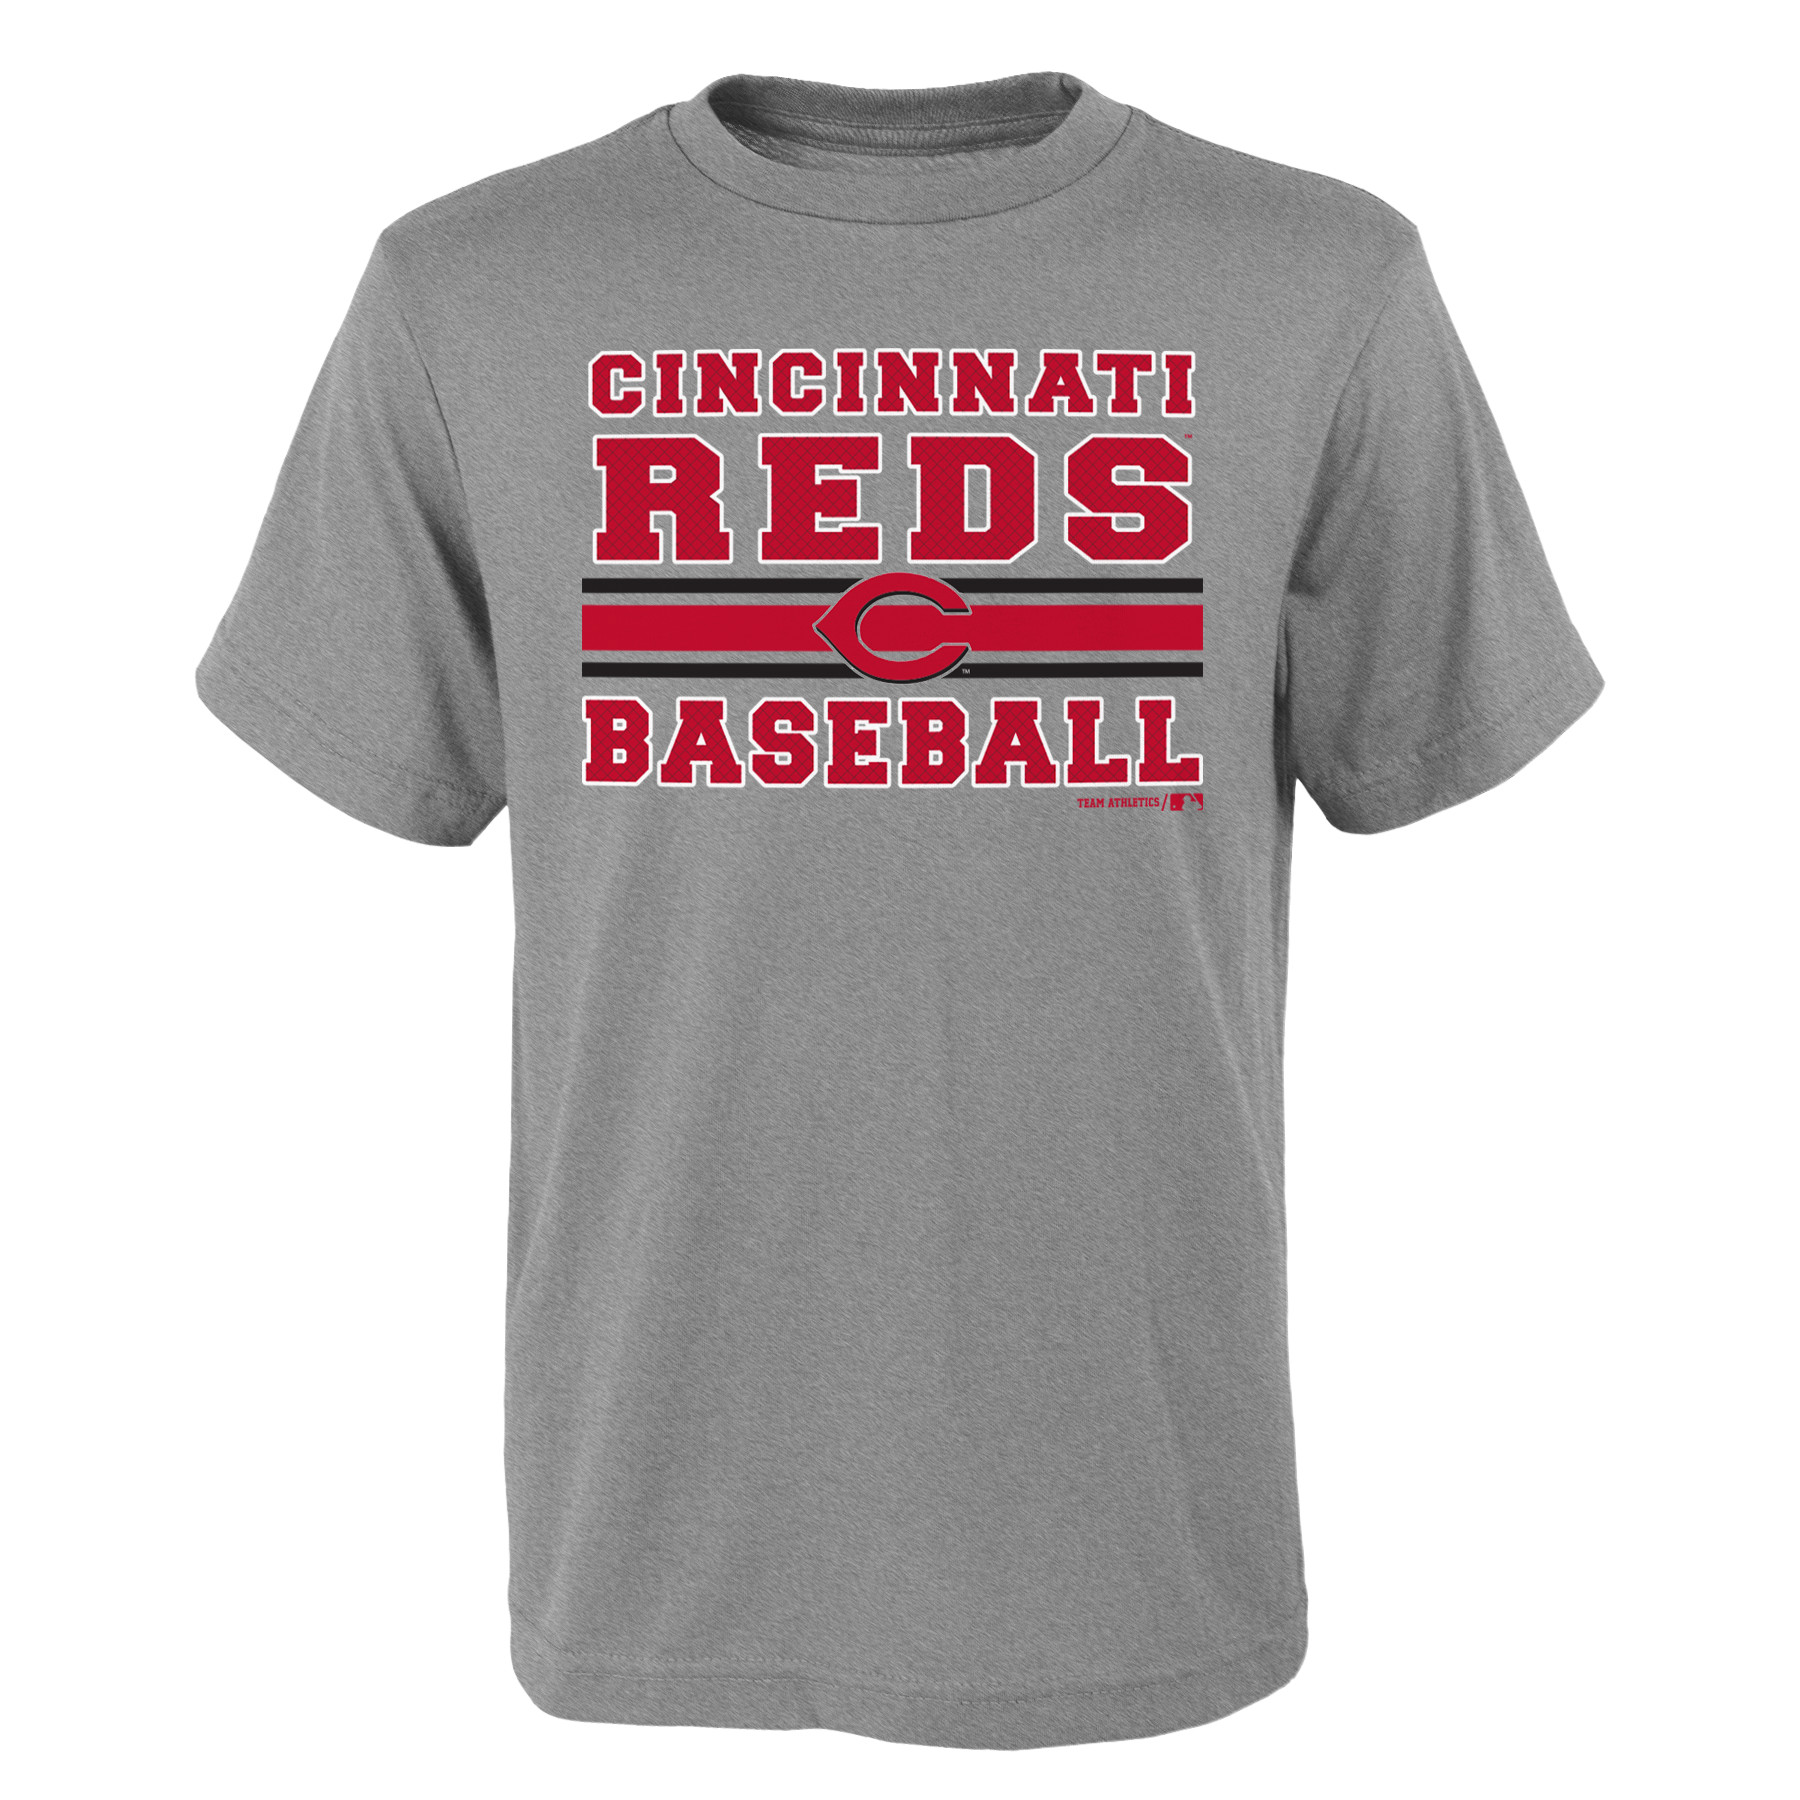 MLB Cincinnati REDS TEE Short Sleeve Boys OPP 90% Cotton 10% Polyester Gray Team Tee 4-18